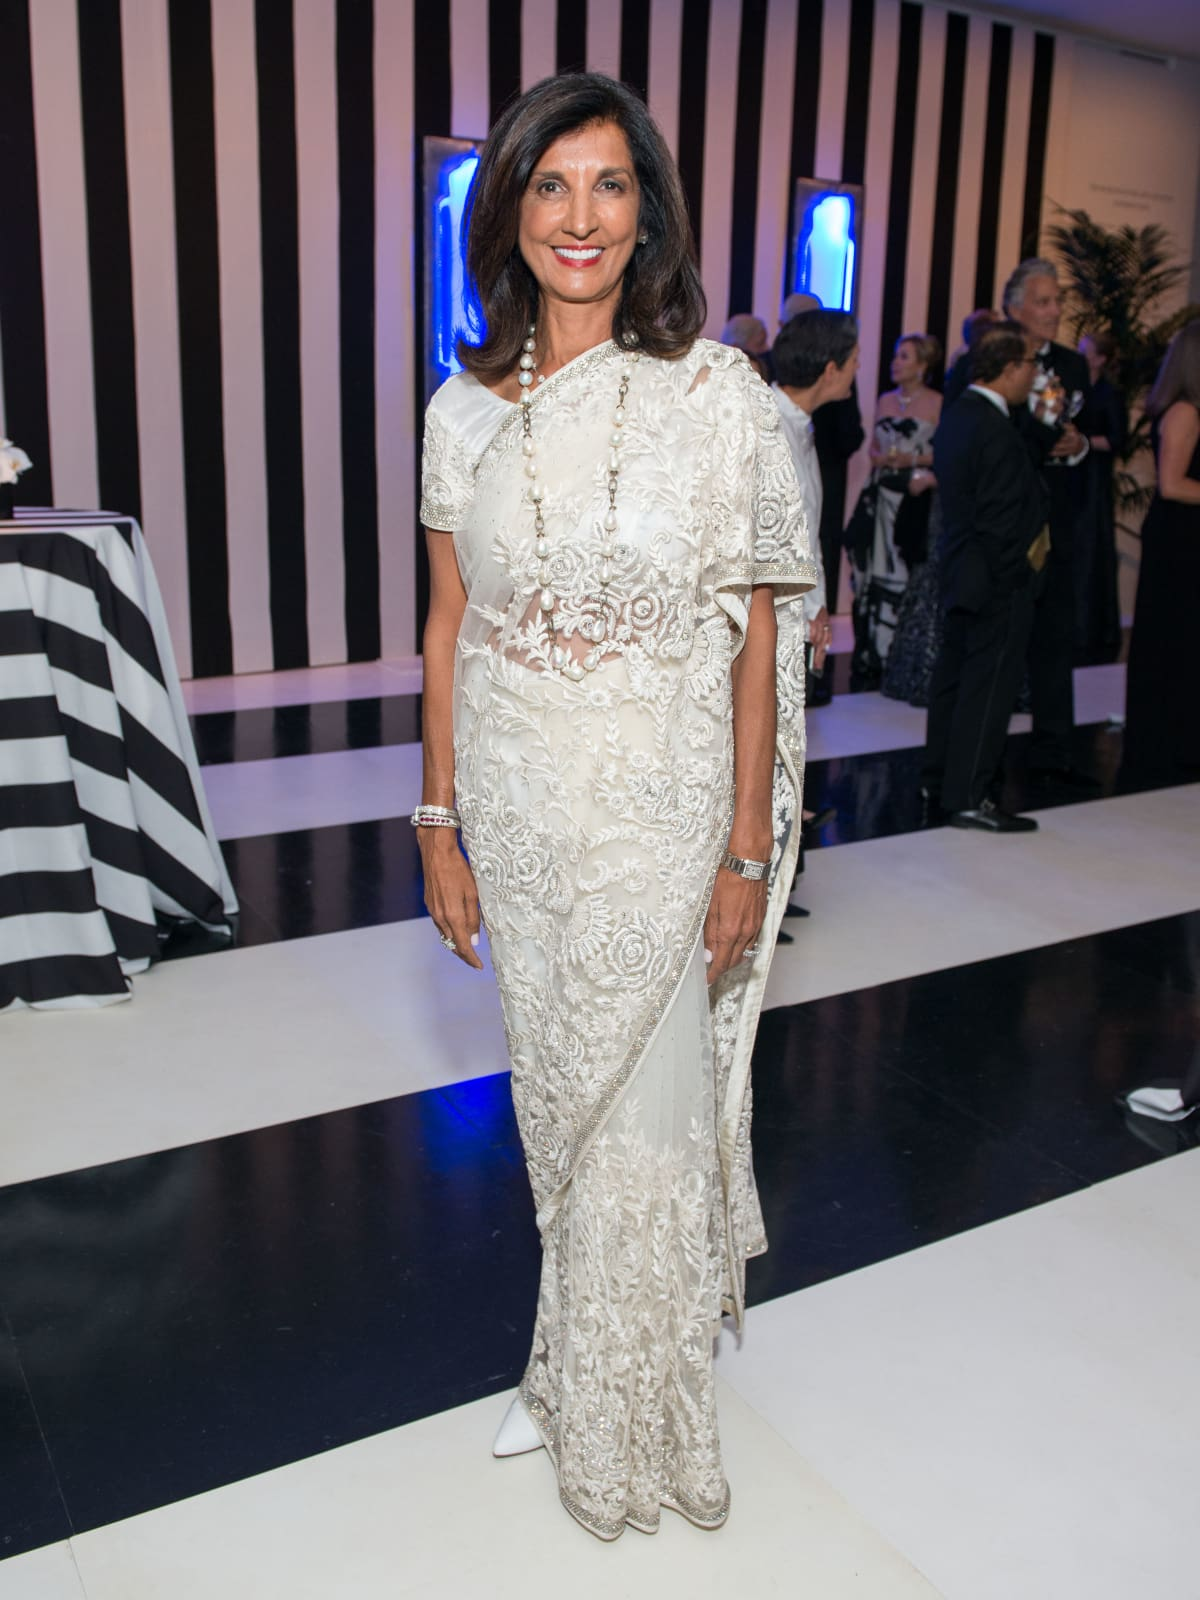 News, Shelby, MFAH gala gowns, Oct. 2015 Sultana Mangalji